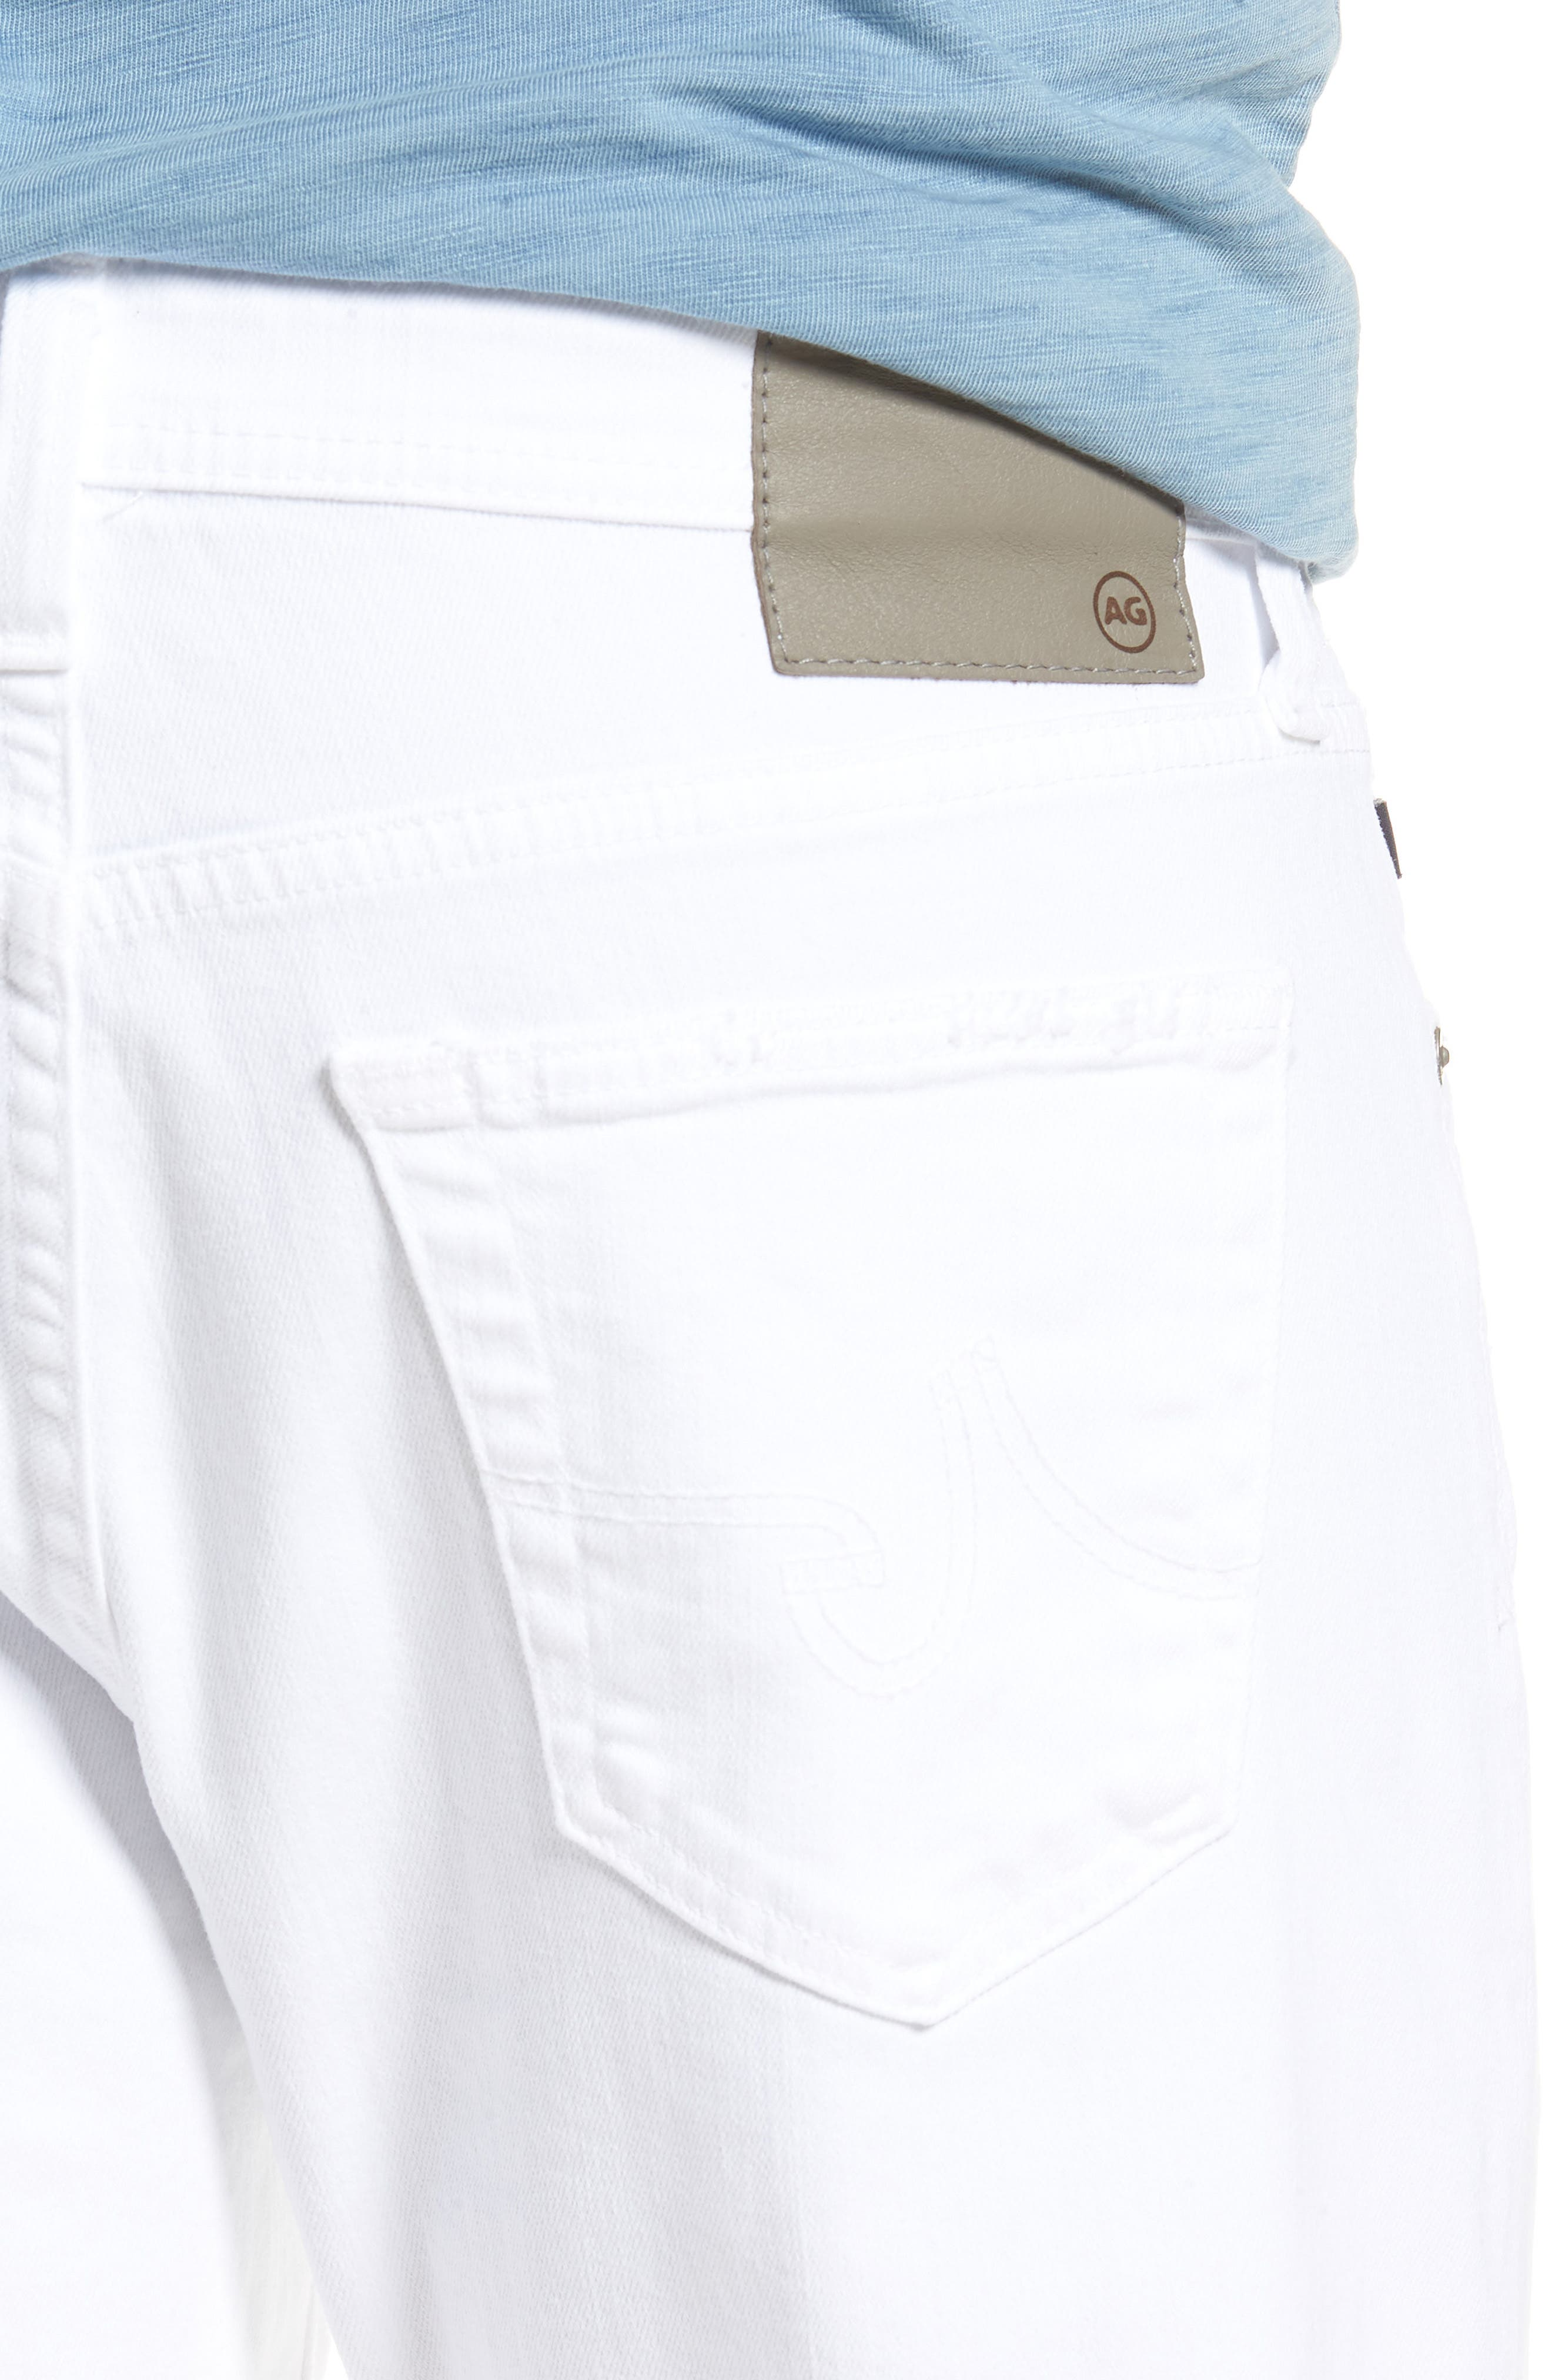 Everett Slim Straight Leg Jeans,                             Alternate thumbnail 4, color,                             White Crash